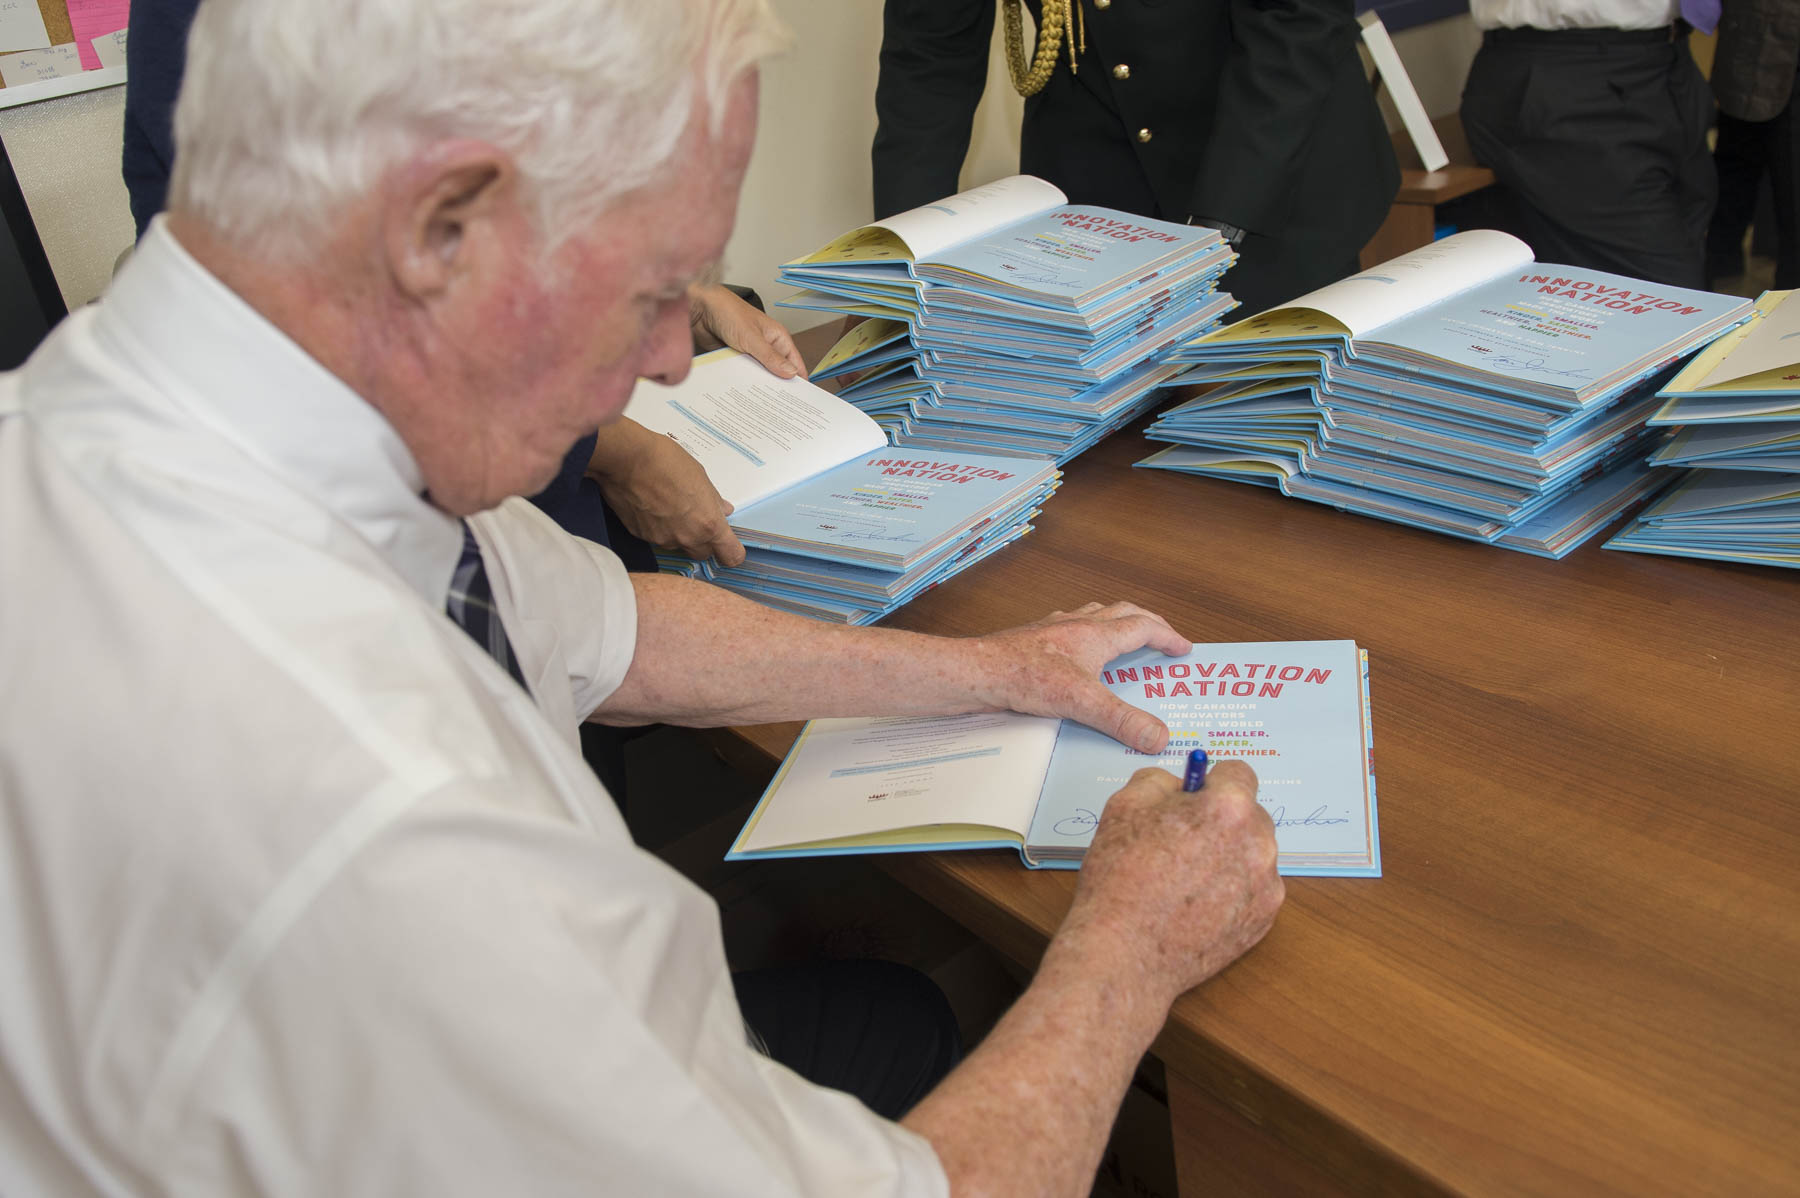 Prior to the event, the Governor General made sure to sign all the copies of Innovation Nation and Ingénieux Junior that were to be given to the students of St. George school taking part in the book launch.